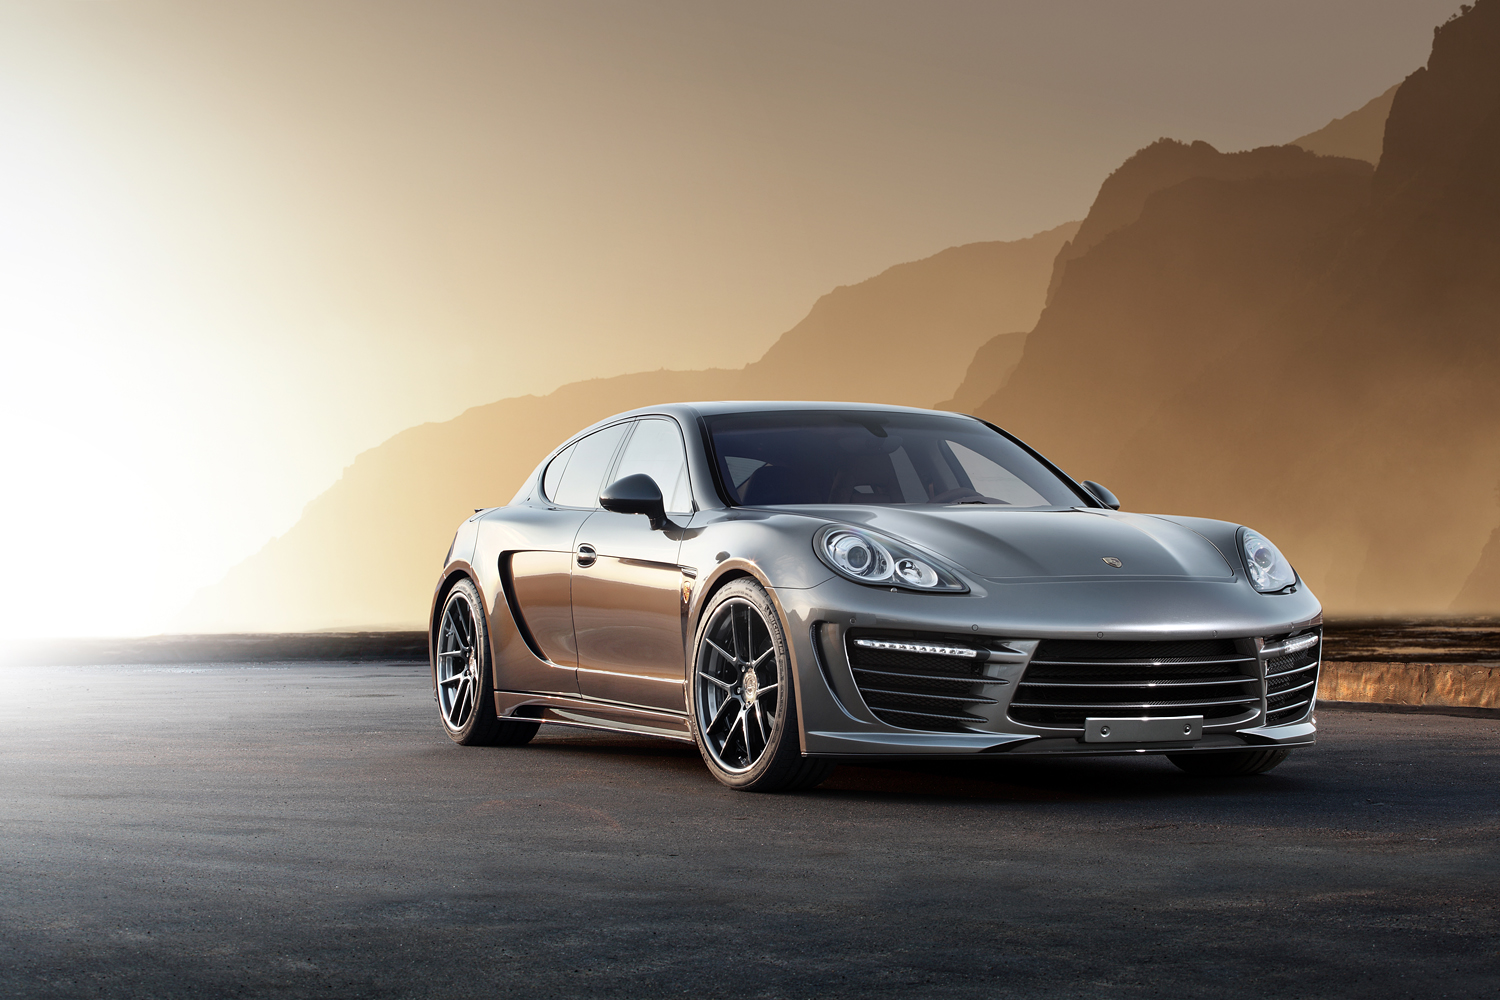 Porsche Hd Wallpapers 1080p: Cars Wallpapers HD: Porsche HD Wallpapers